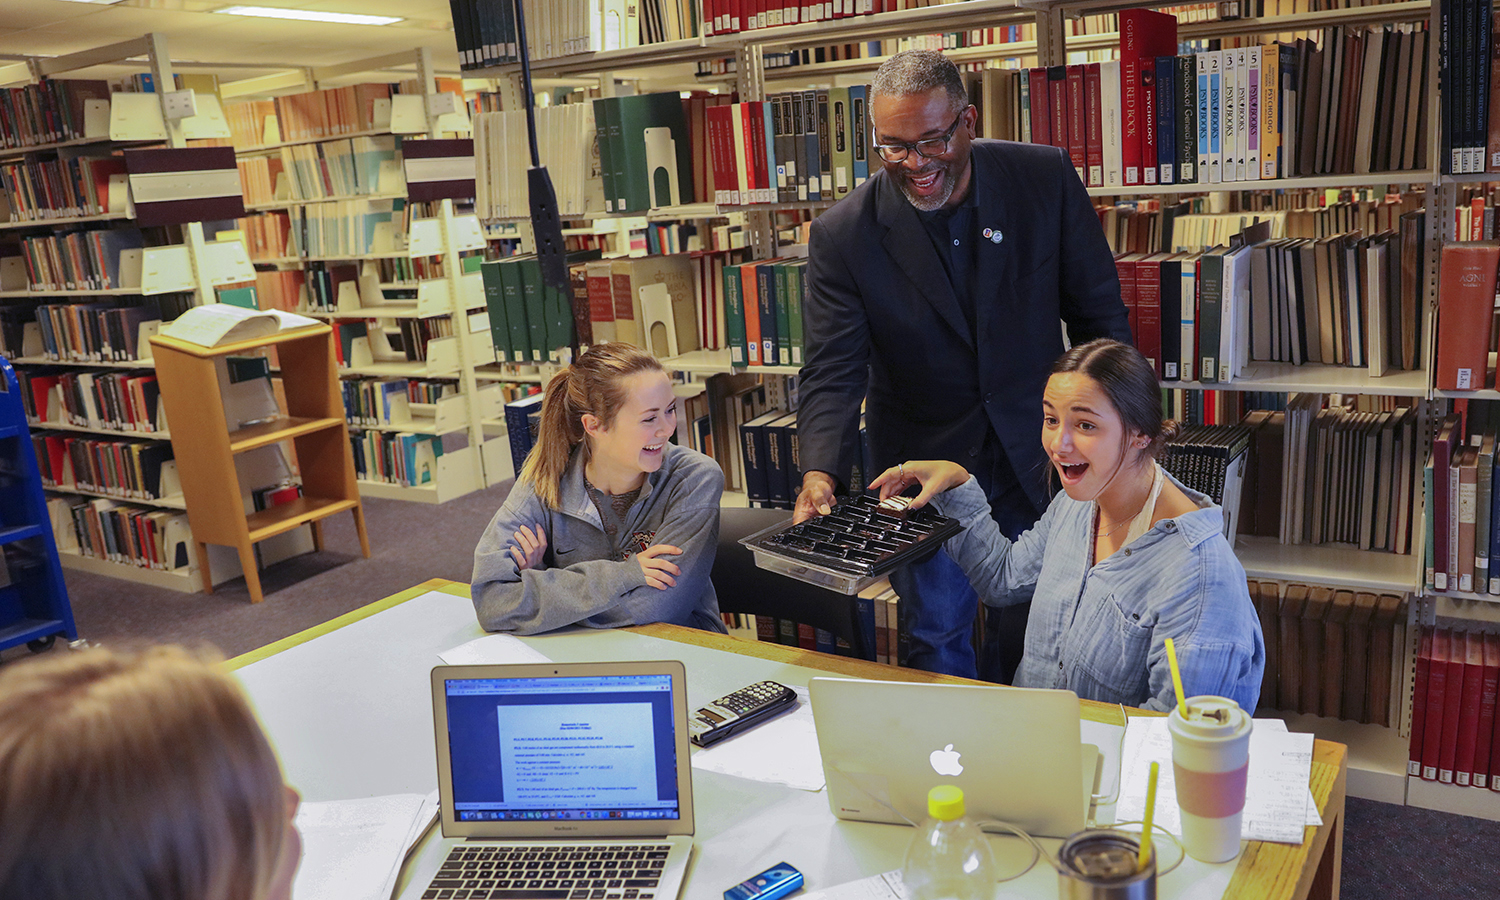 President Gregory J. Vincent '83 passes out snacks to Julia Raleigh '18 (left) and Sydney Smilen '18 in the Warren Hunting Smith Library.